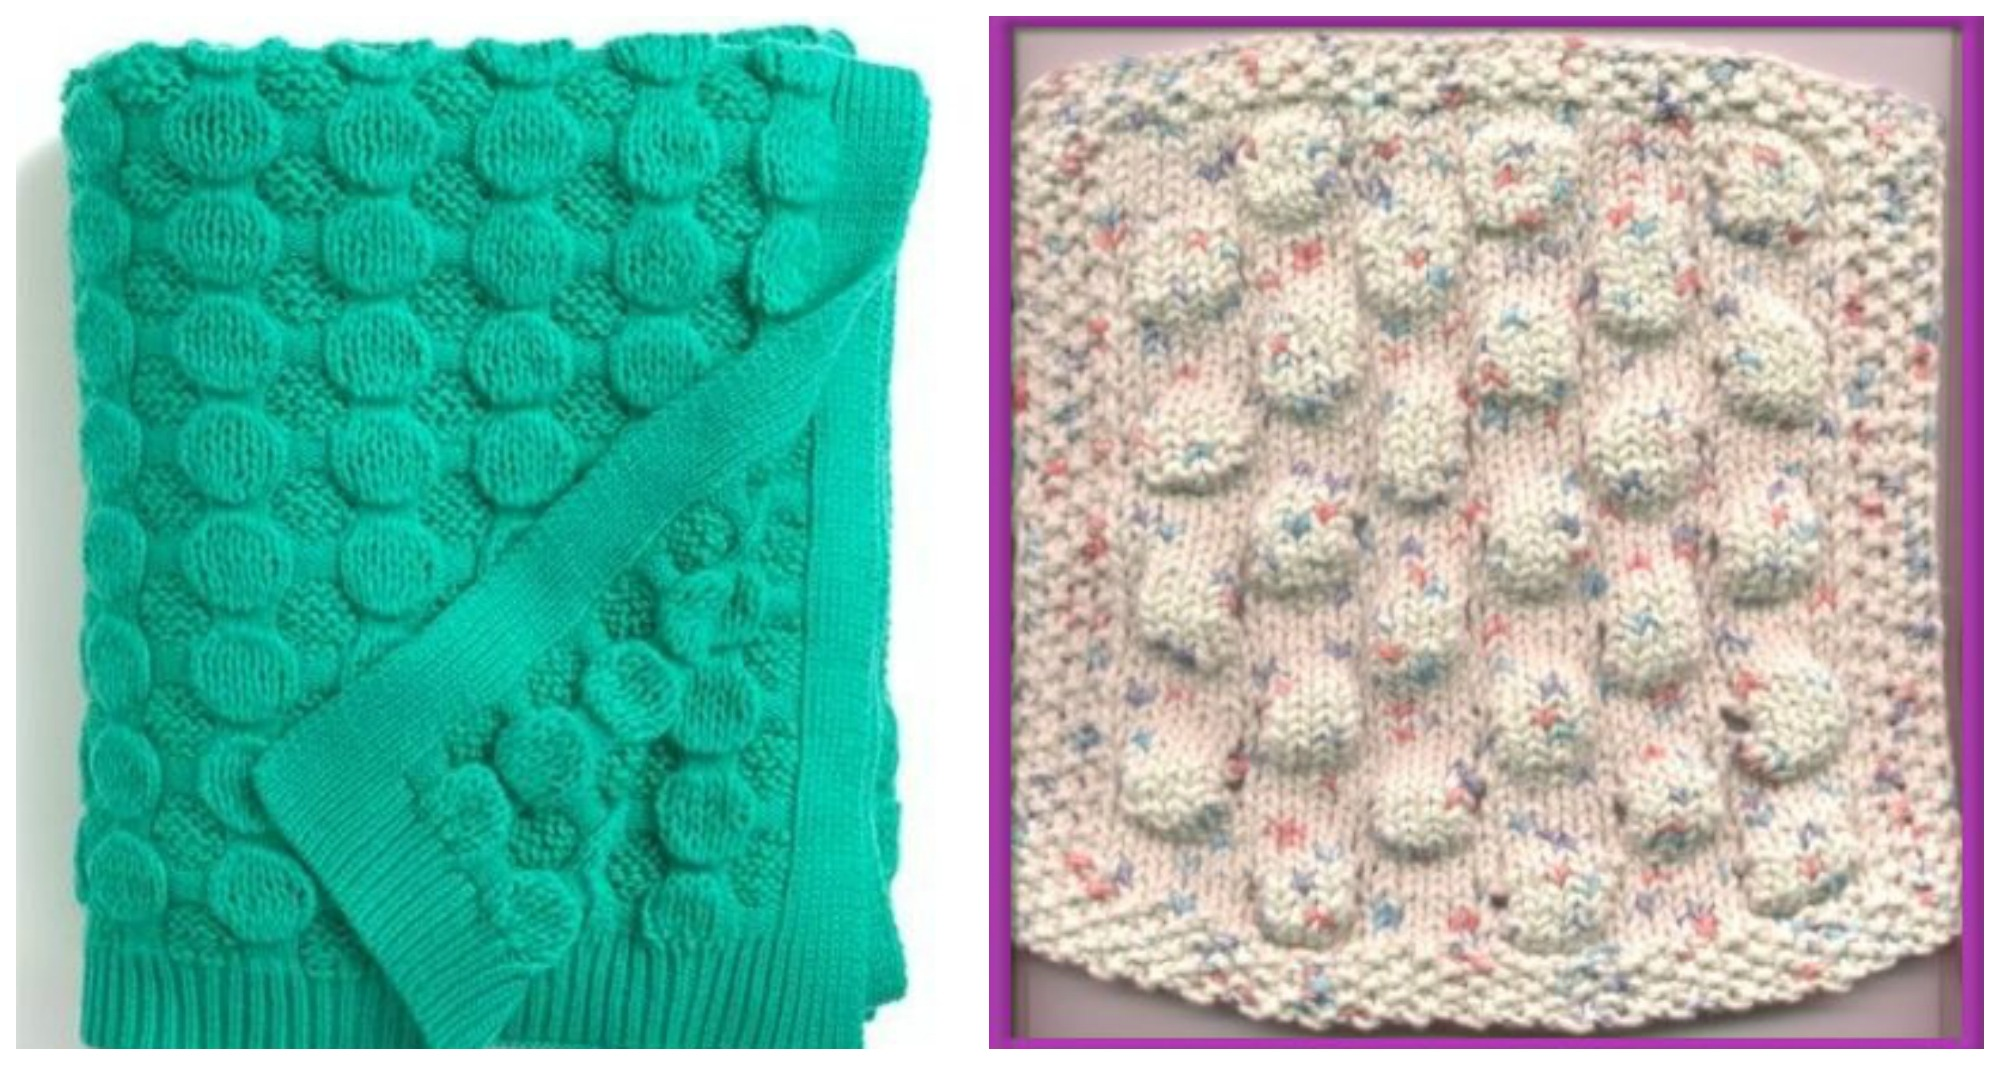 Knitting Stitches Wrap 3 : Knit Bubble Wrap Stitch